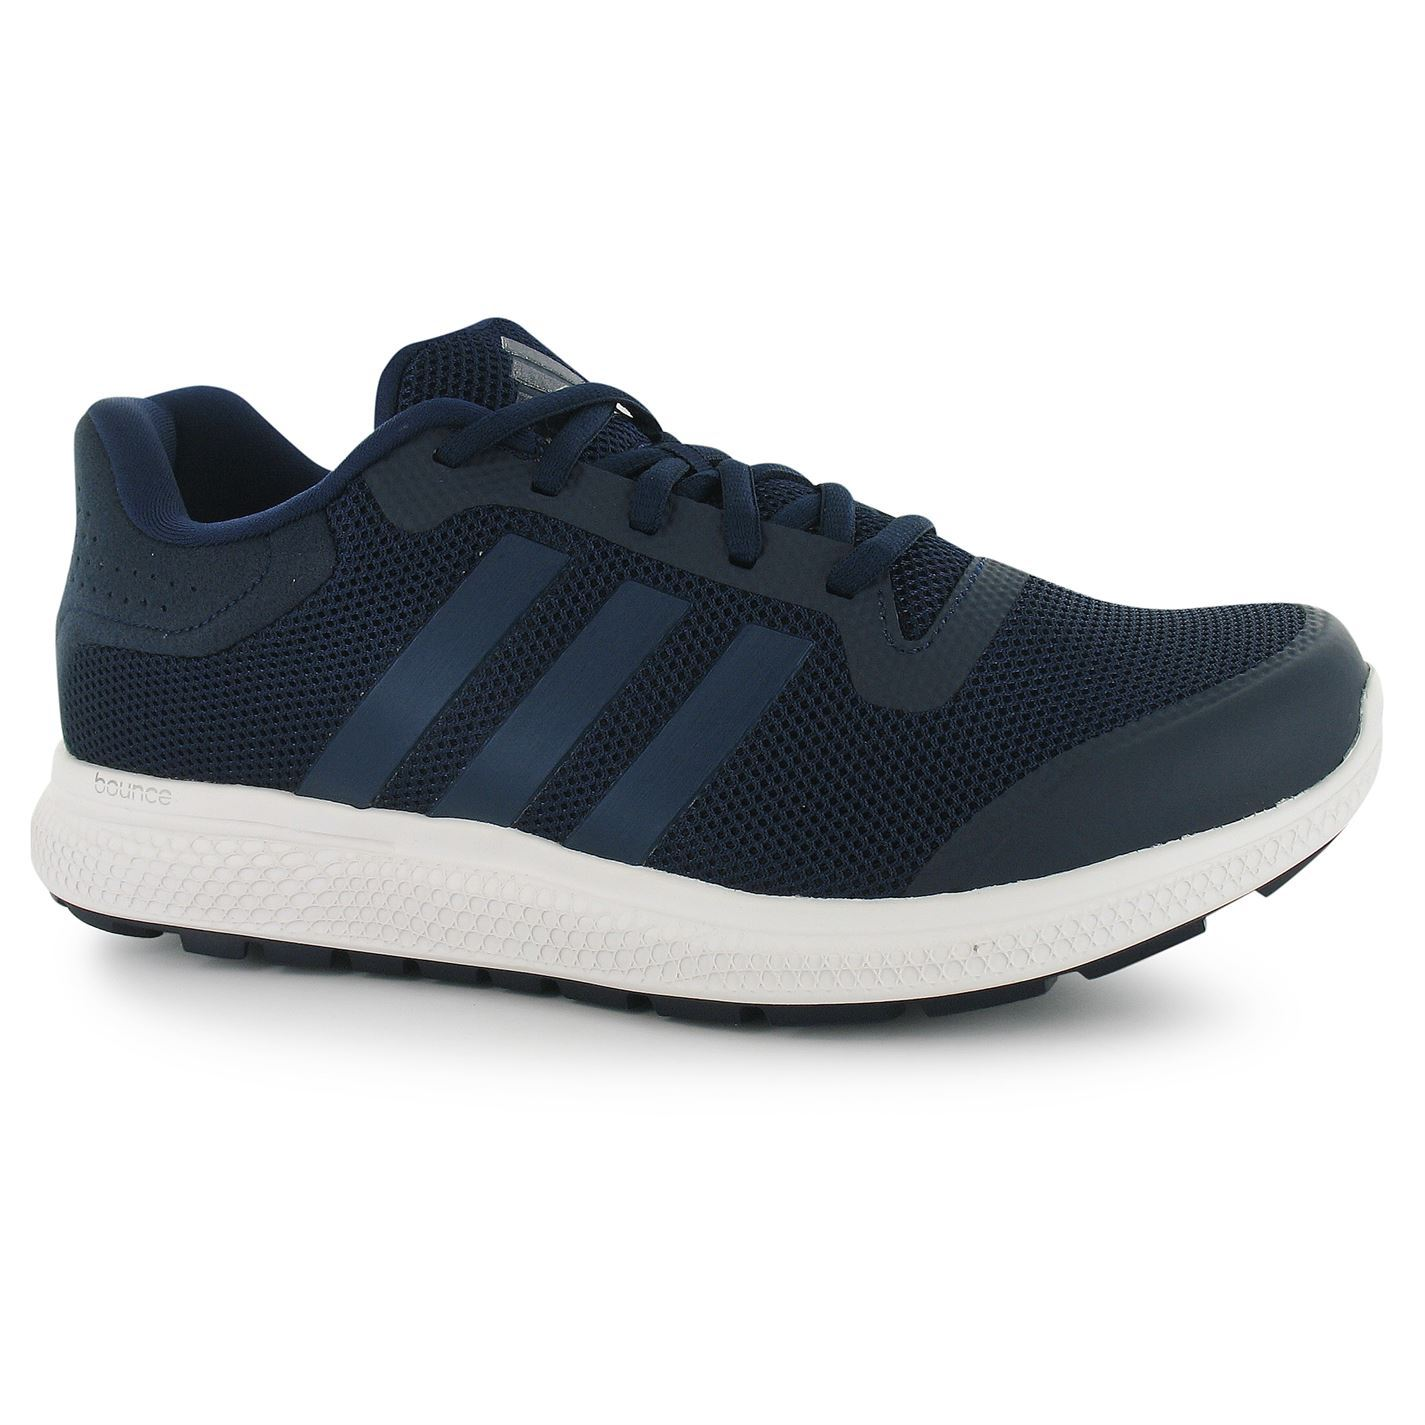 51% off adidas Other #addidas Clima Cool Green from Justin's closet .